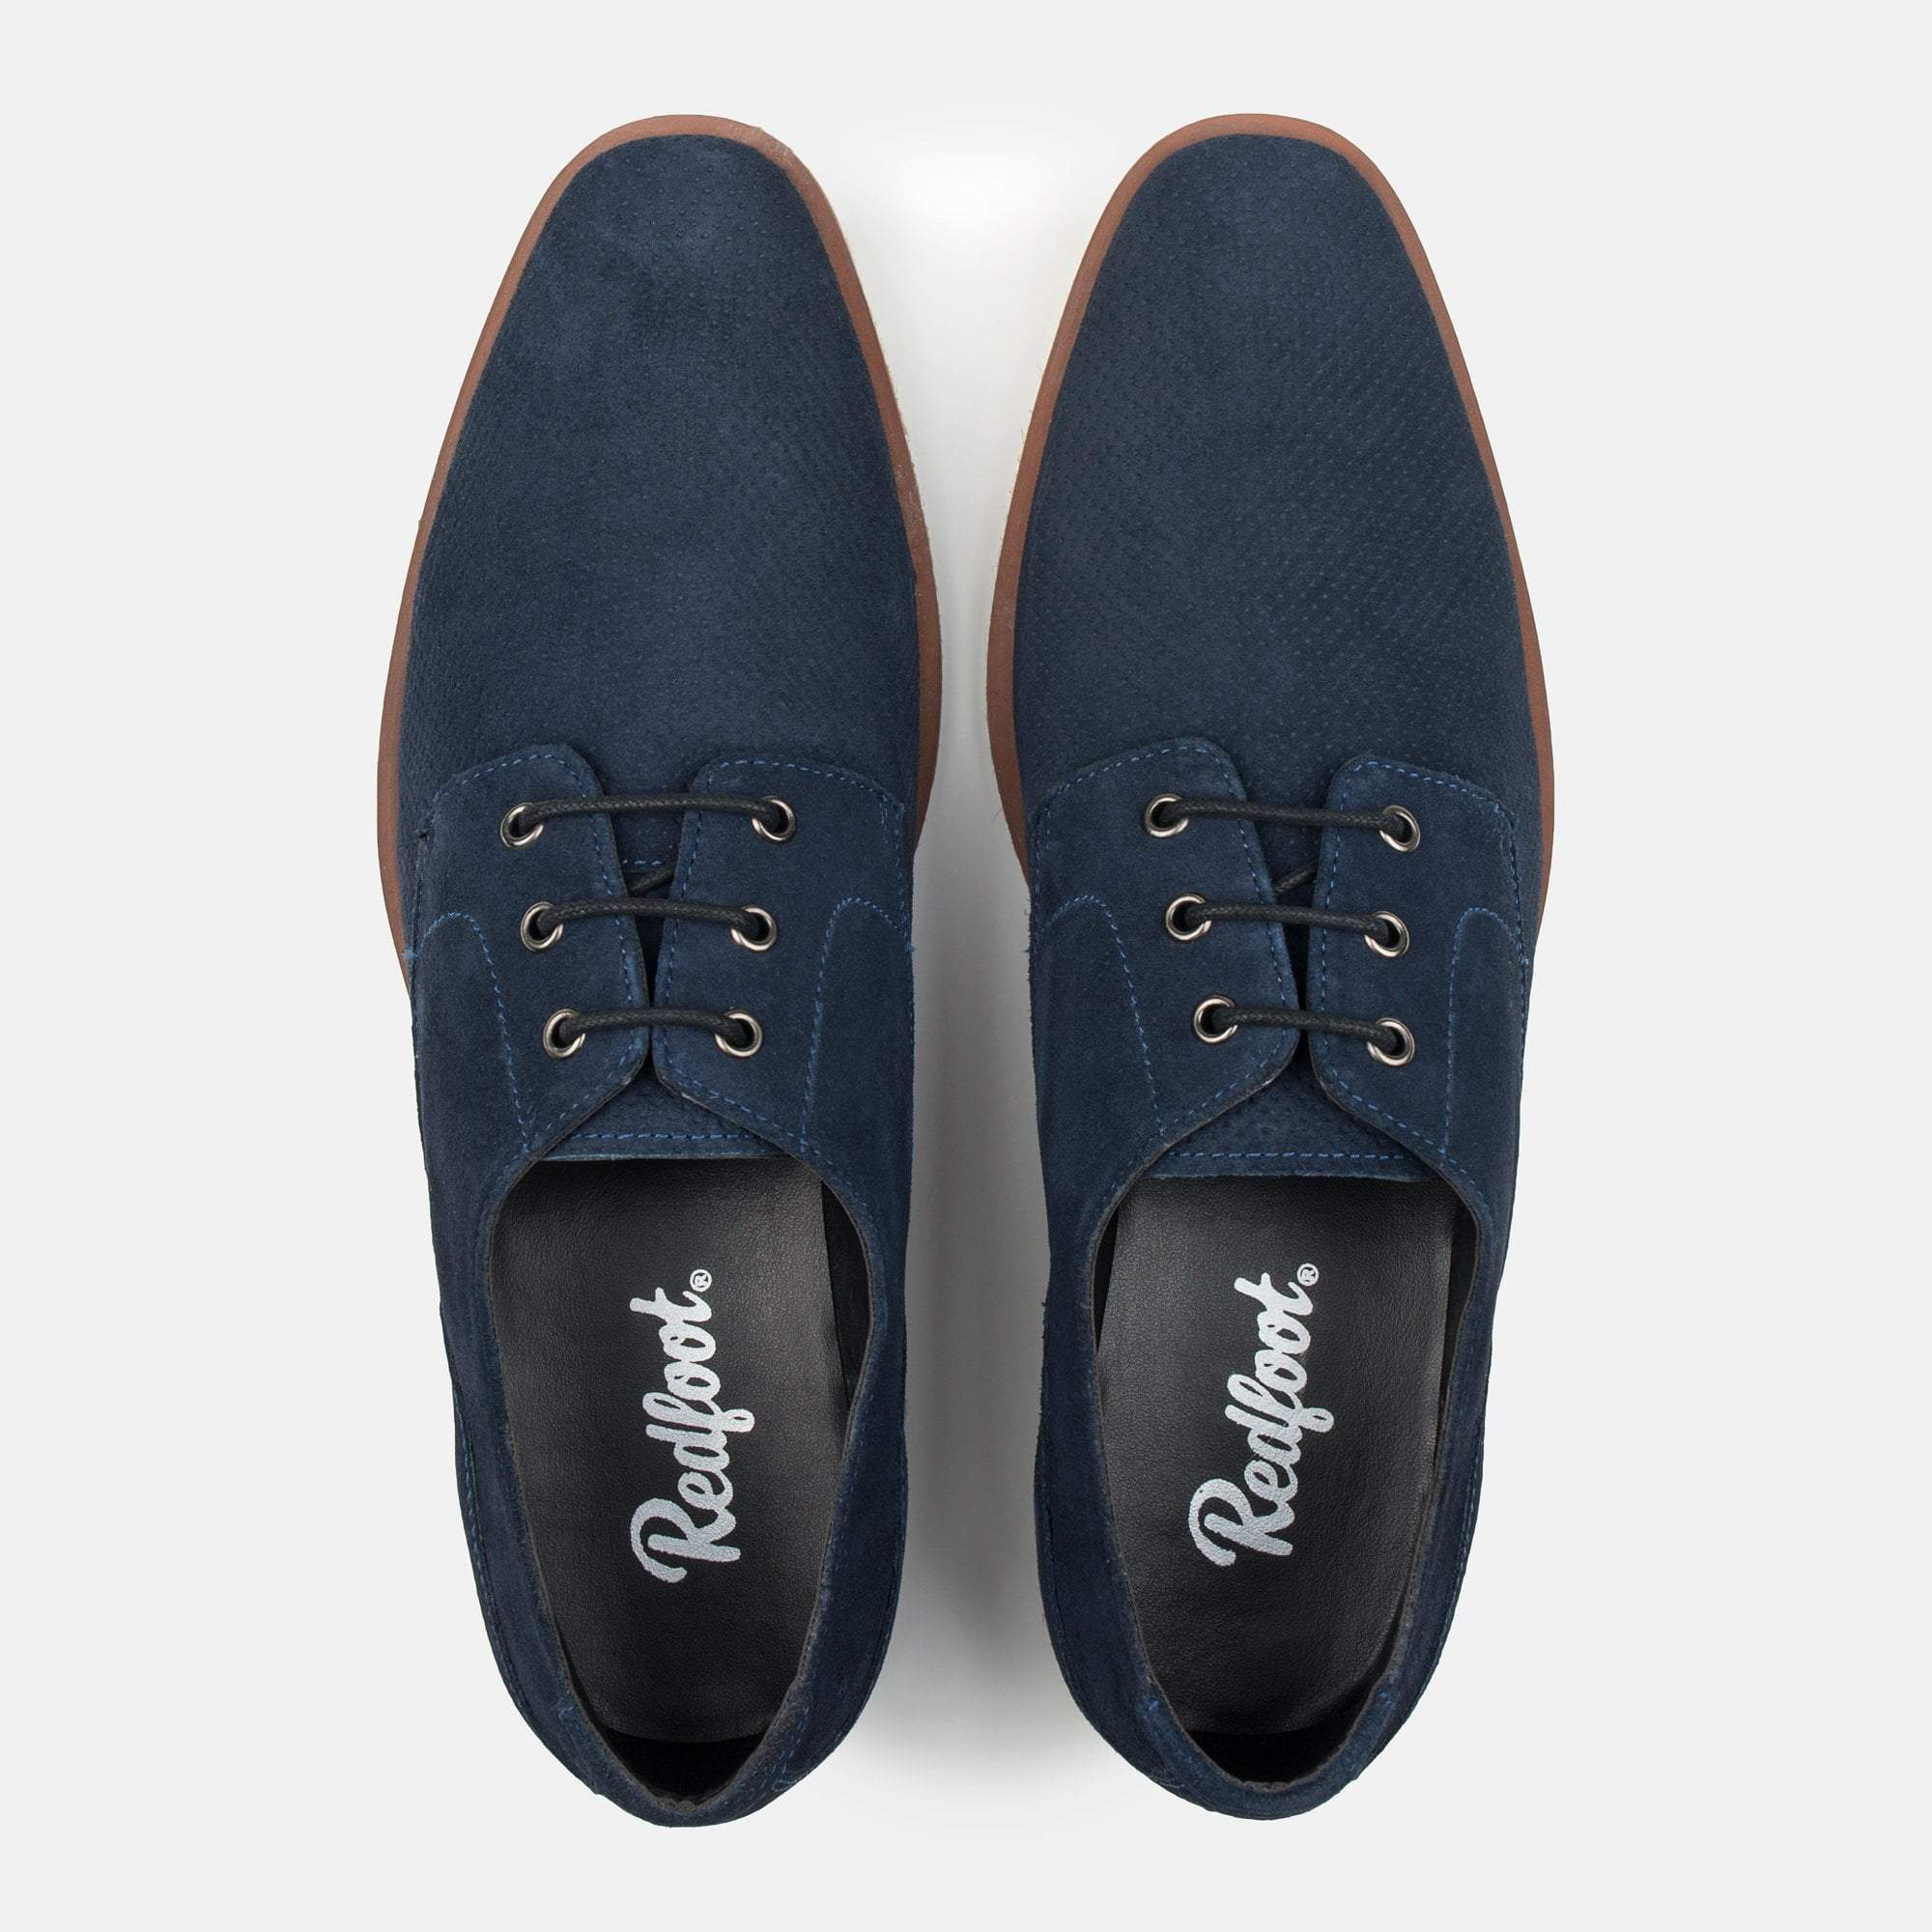 Redfoot Footwear UK 6 / EURO 39 / US 7 / Navy / Suede CLARKE NAVY